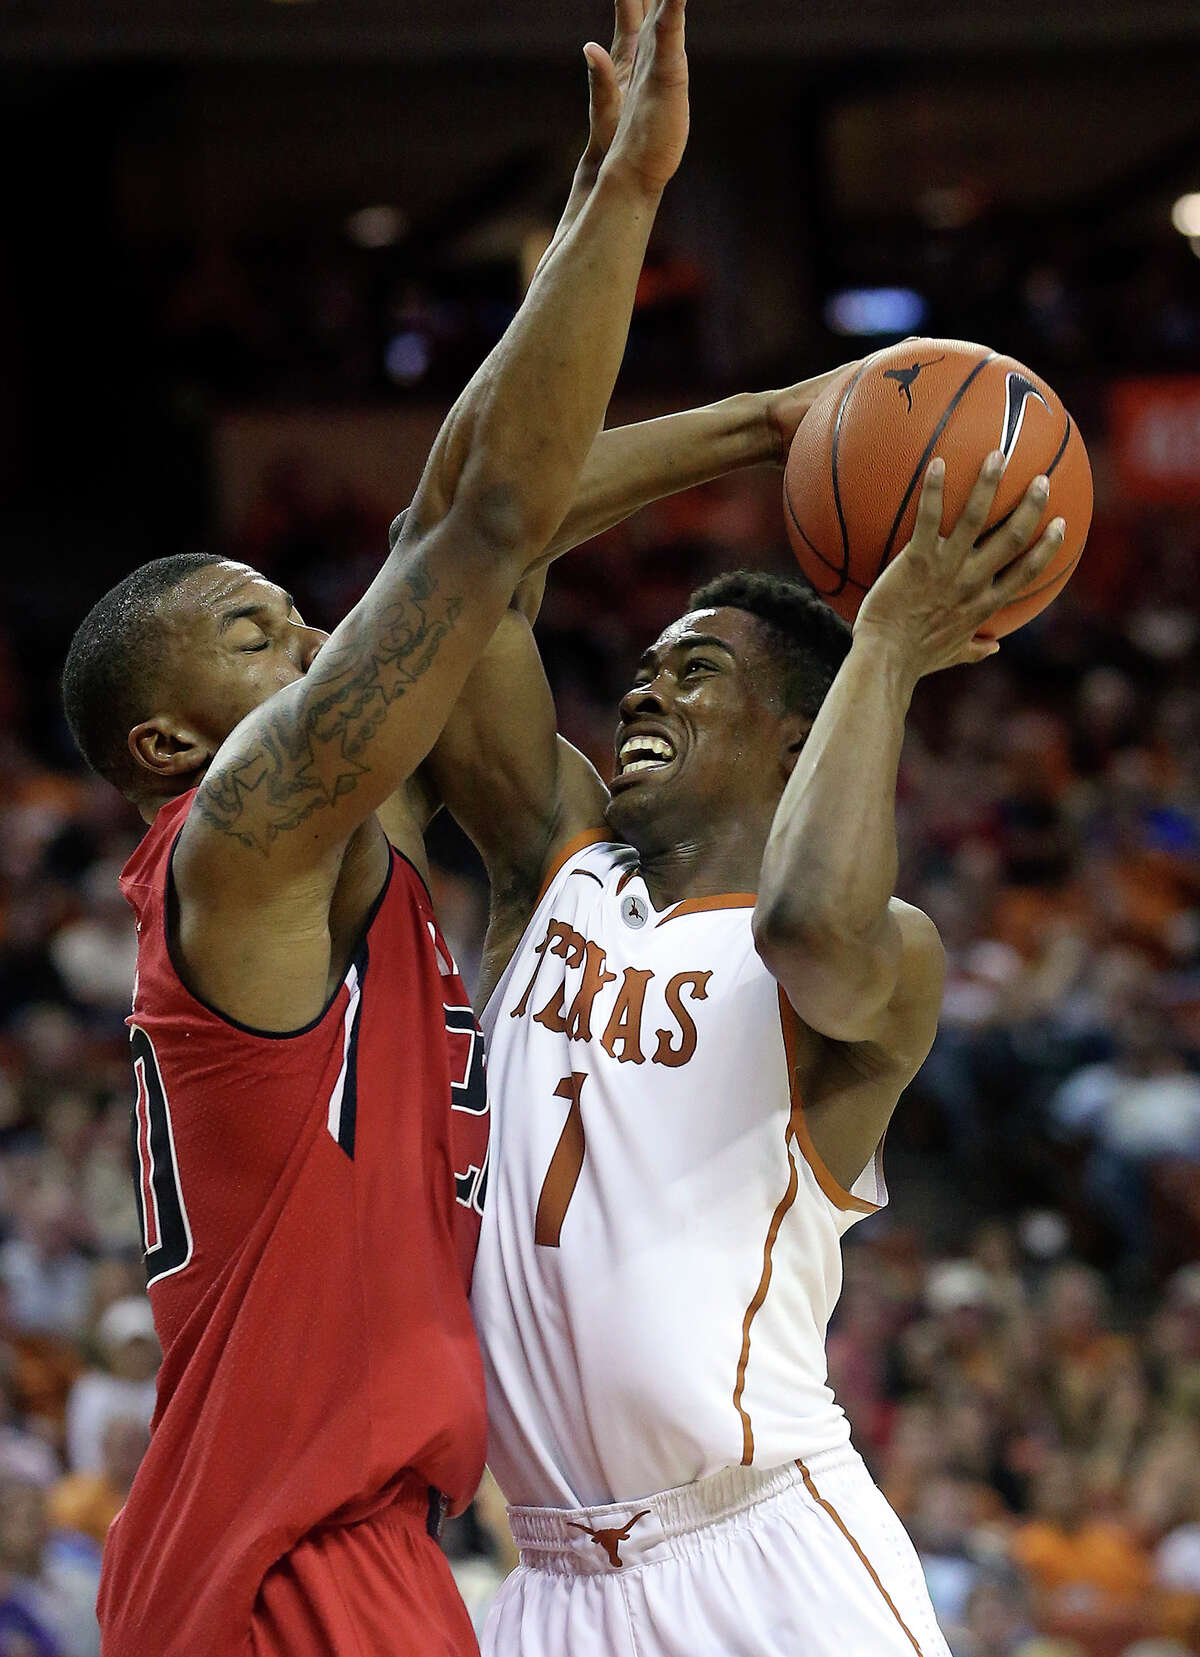 UT guard Isaiah Taylor takes a shot under the basket against Texas Tech's Toddrick Gotcher at the Frank Erwin Center in Austin on January 11, 2014. Taylor is expected to be a key piece to the Longhorns offense in 2014-15.